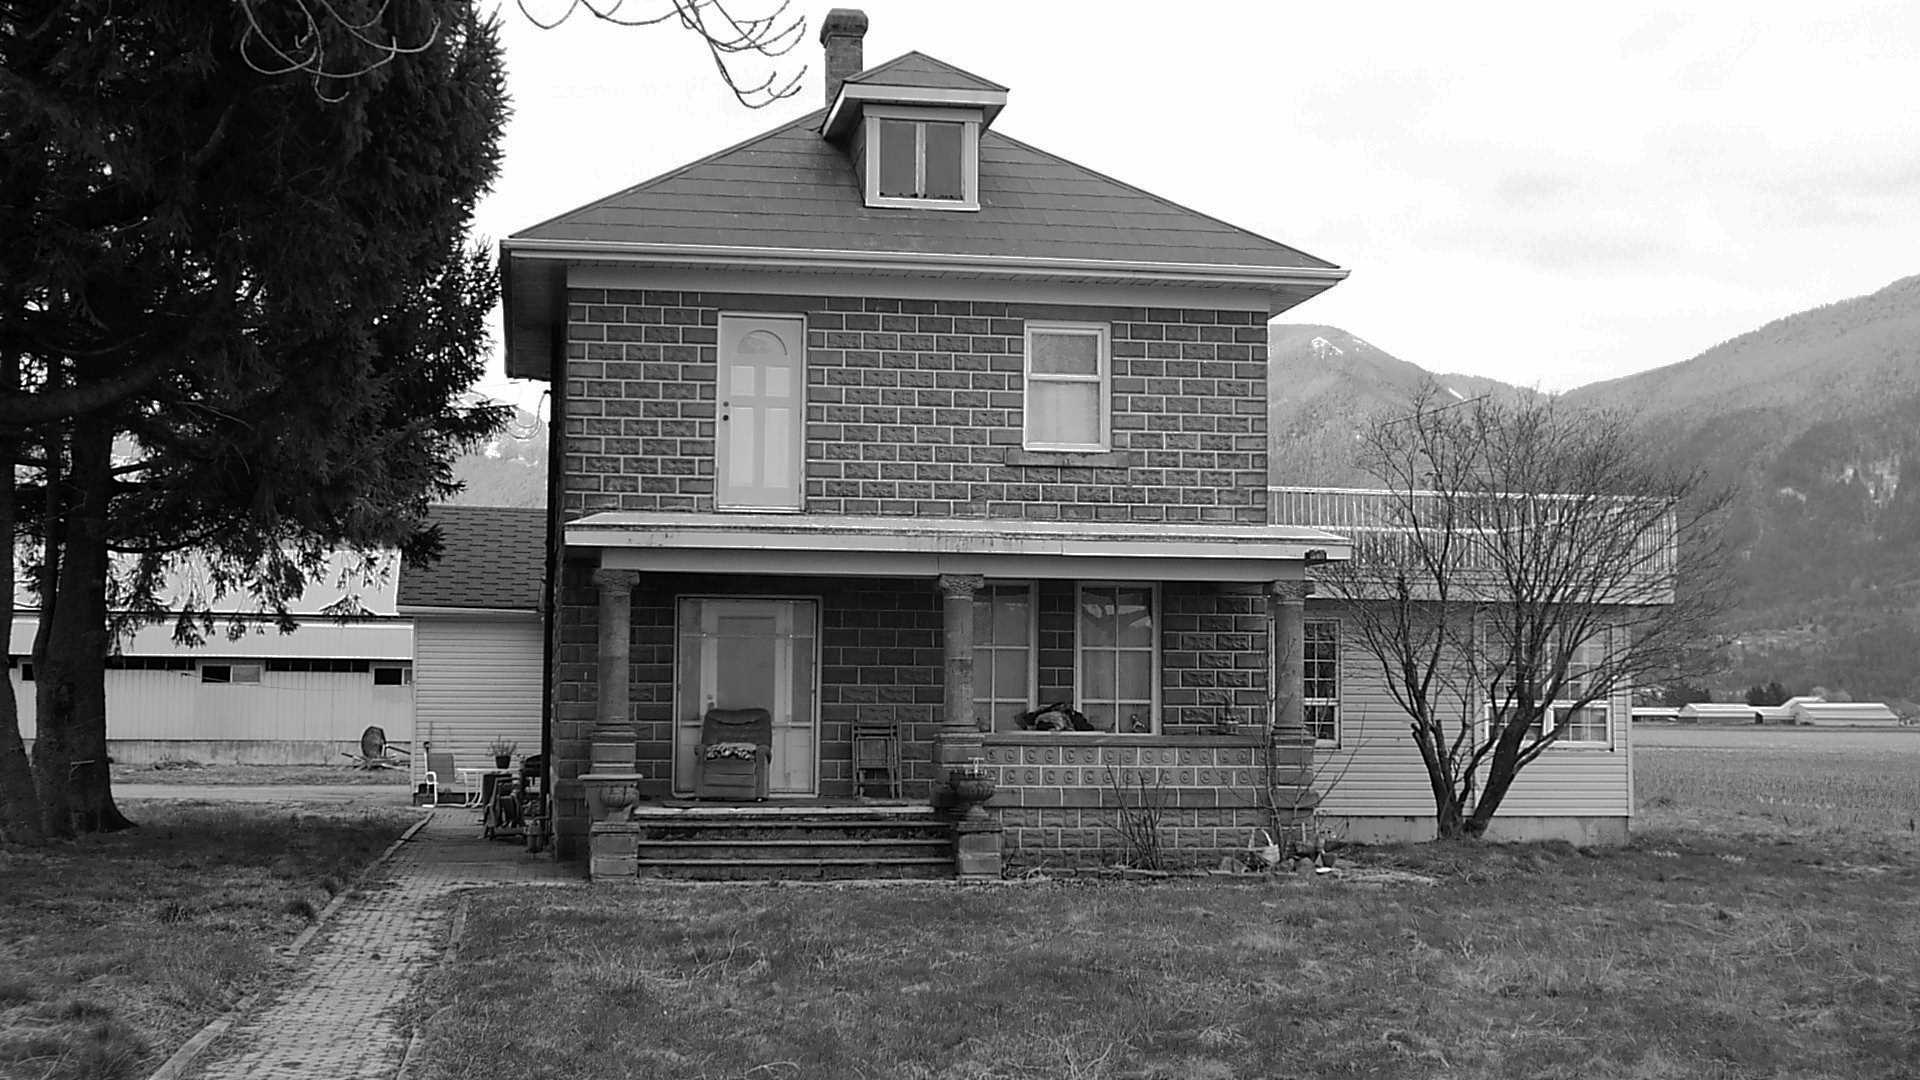 The royal hotel chilliwack blog concrete block houses for Block homes